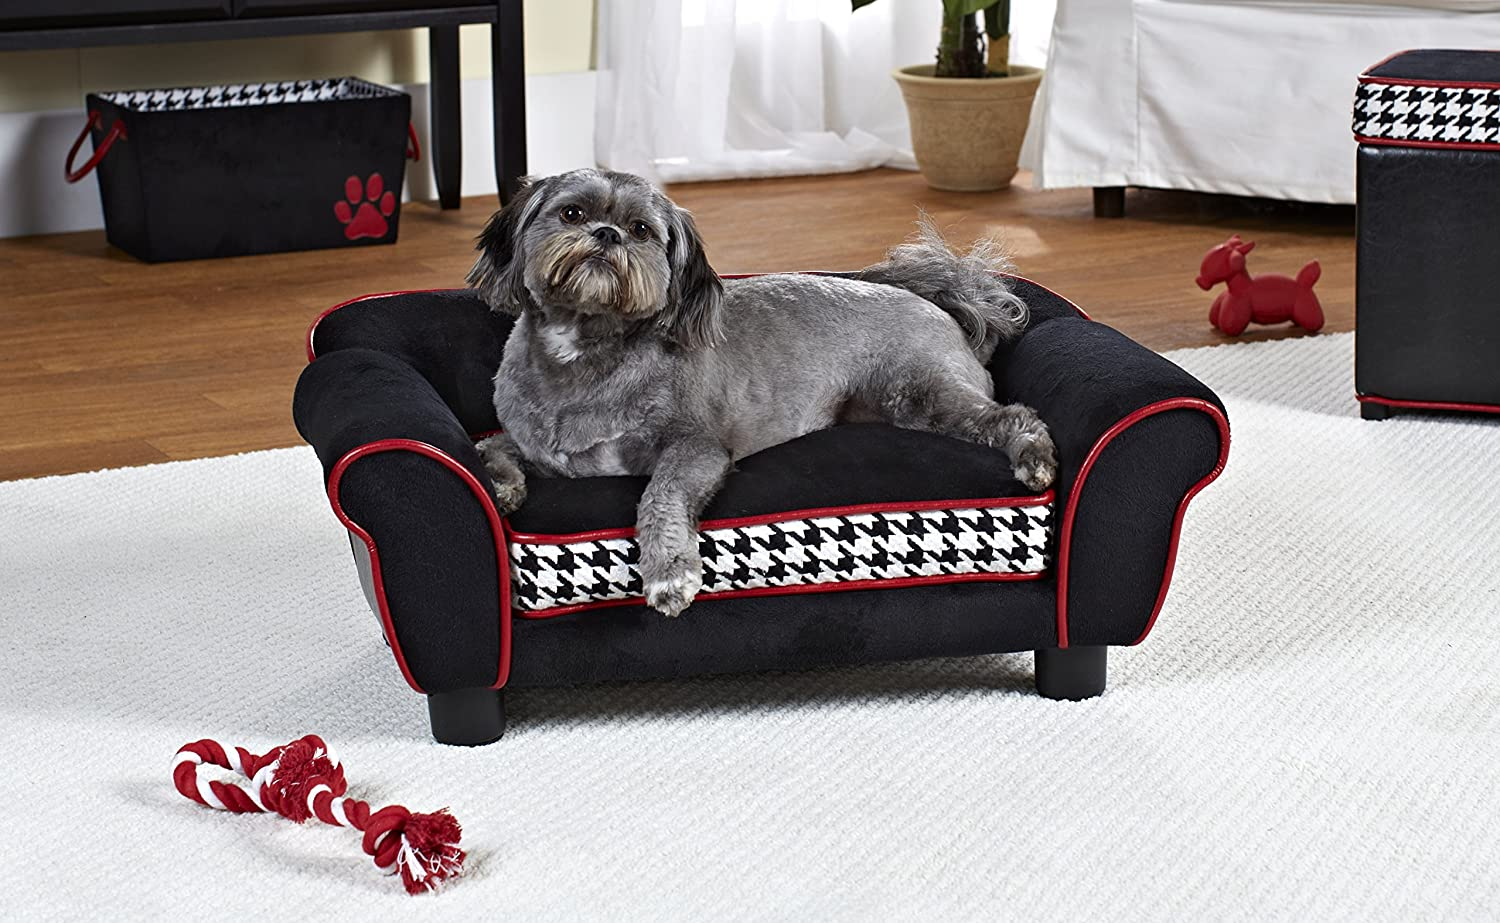 BlackWhite LargeWohnDirect Designer Pet Sofa Bed for Dogs & Cats   Durable, Robust & Easy to Clean   Comfortable Soft Cushion for Your Dog and Practical Toy Storage Bag for Toys   64x45x40cm